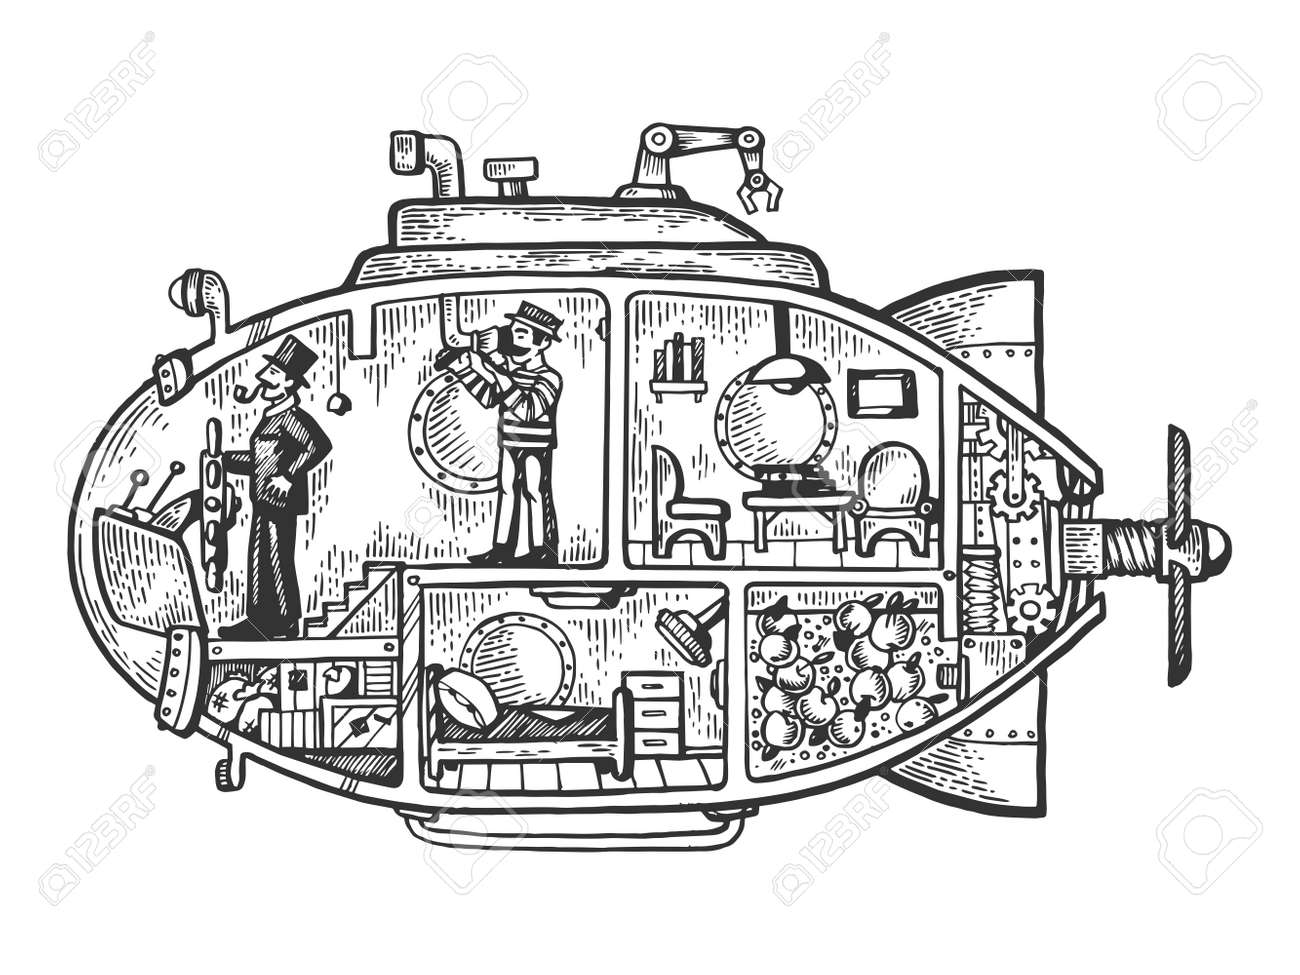 Fantastic fabulous submarine engraving vector illustration. Scratch board style imitation. Black and white hand drawn image. - 112010264